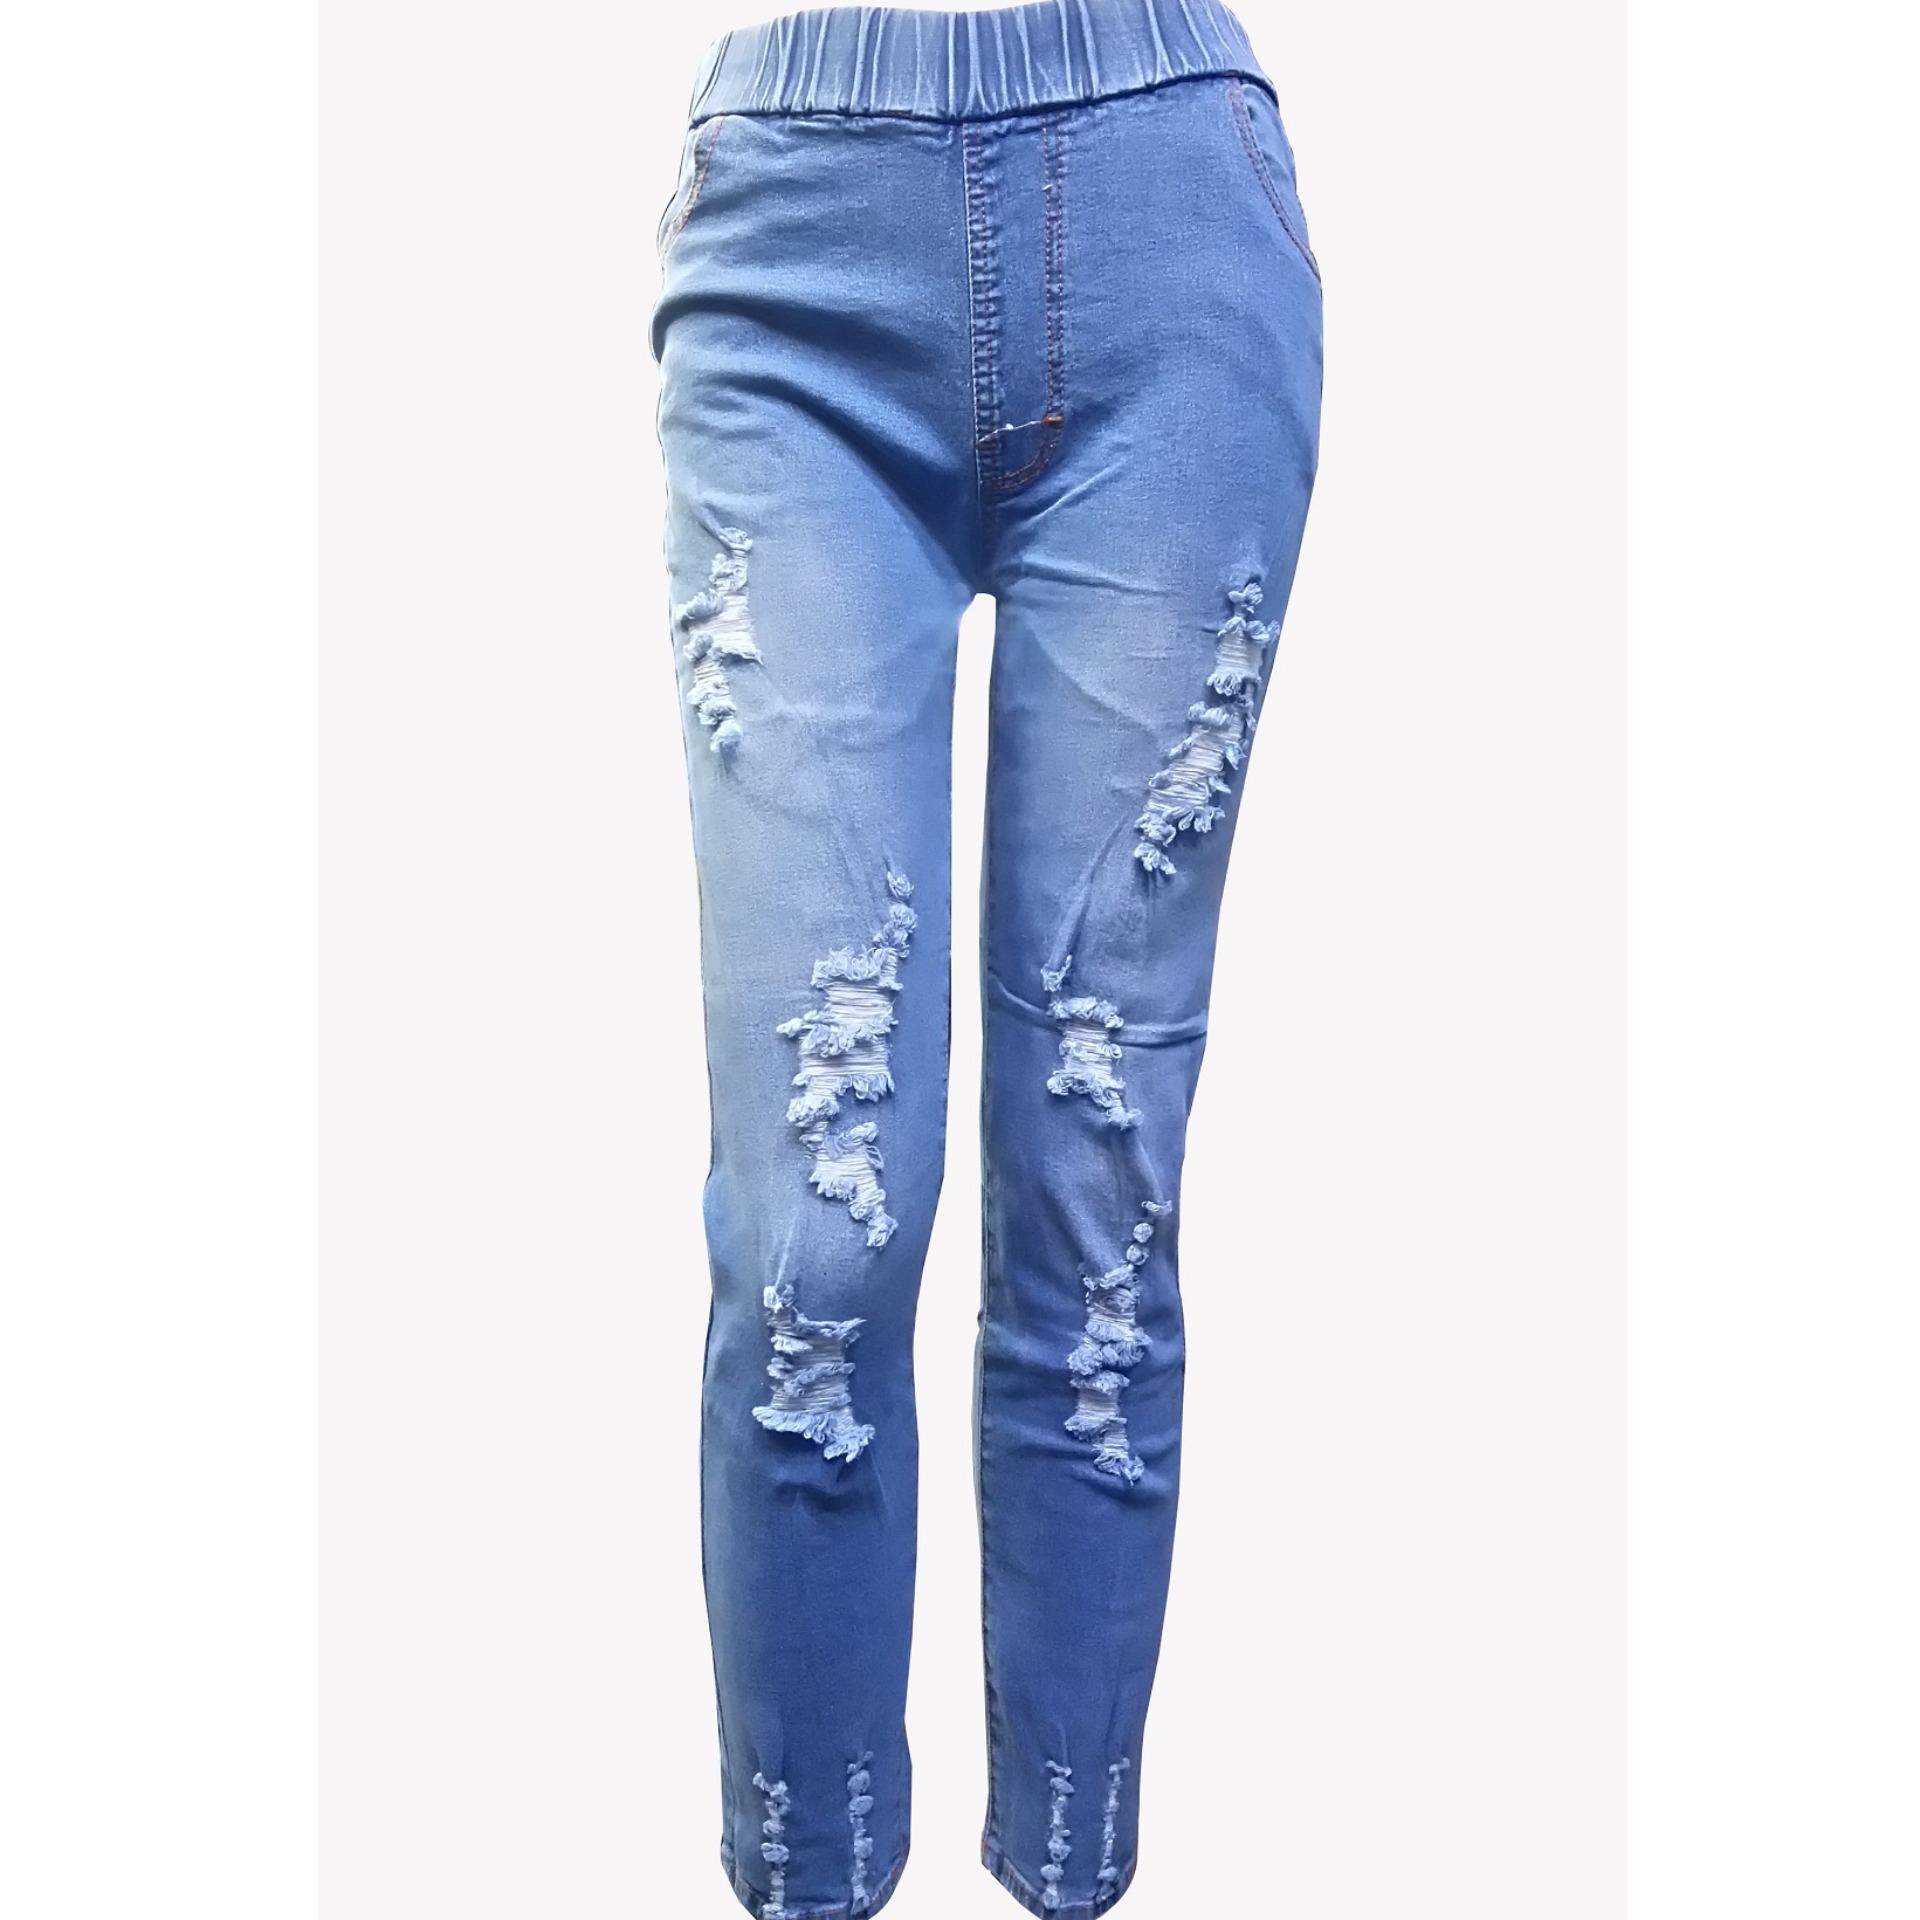 Tunas Baru Fashion Celana Jeans 9116 Blue Black Free Acc Daftar Lois Original Jogger Cjg300sn Biru 28 Source Zfashion